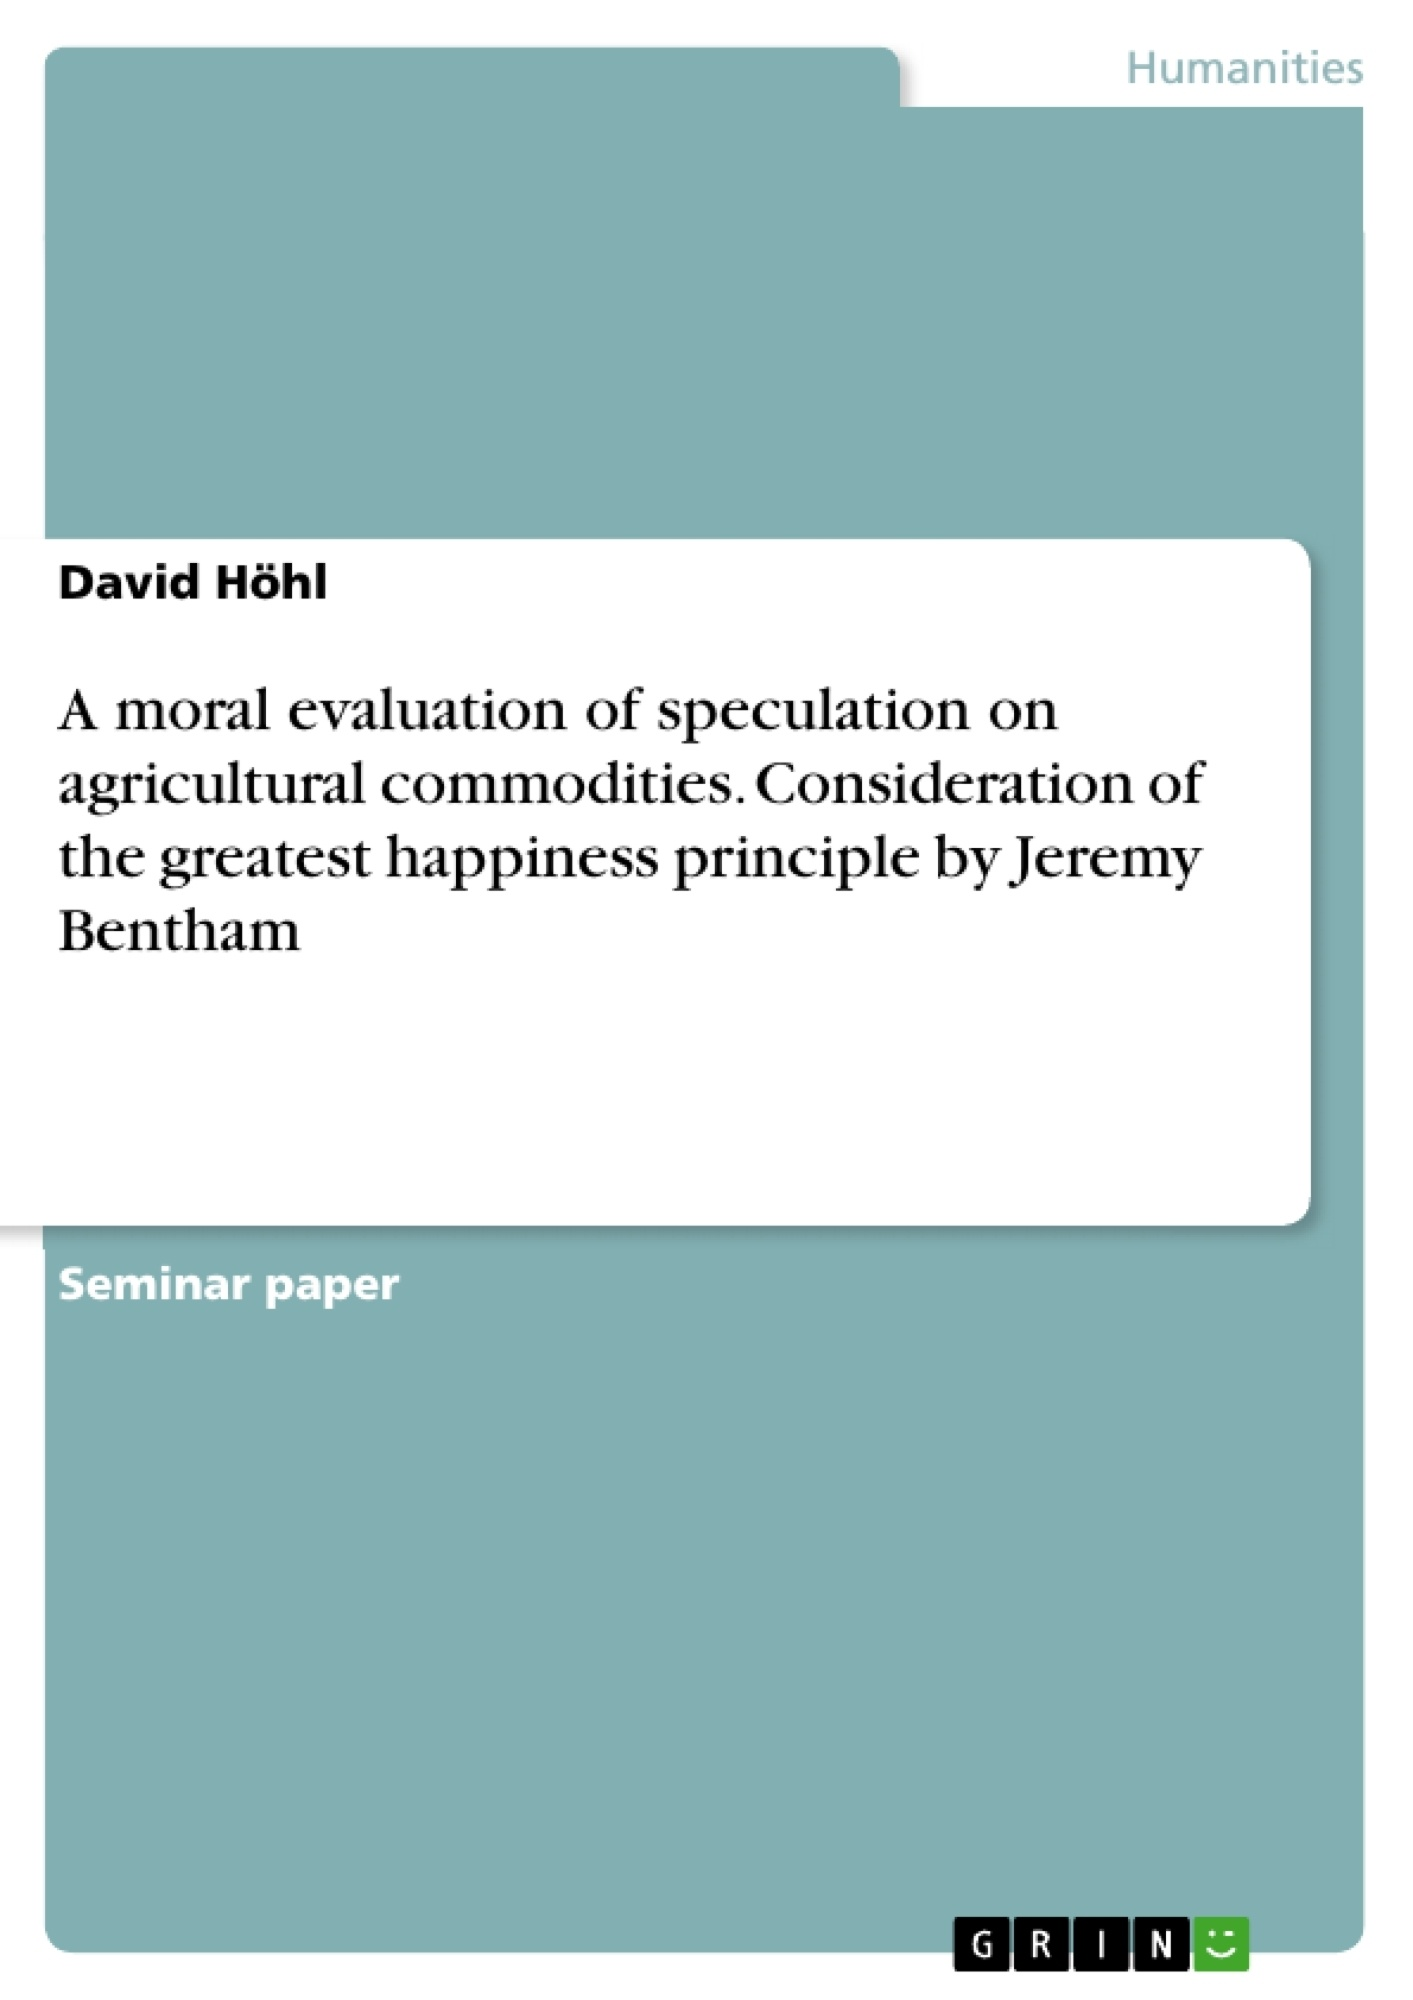 Title: A moral evaluation of speculation on agricultural commodities. Consideration of the greatest happiness principle by Jeremy Bentham